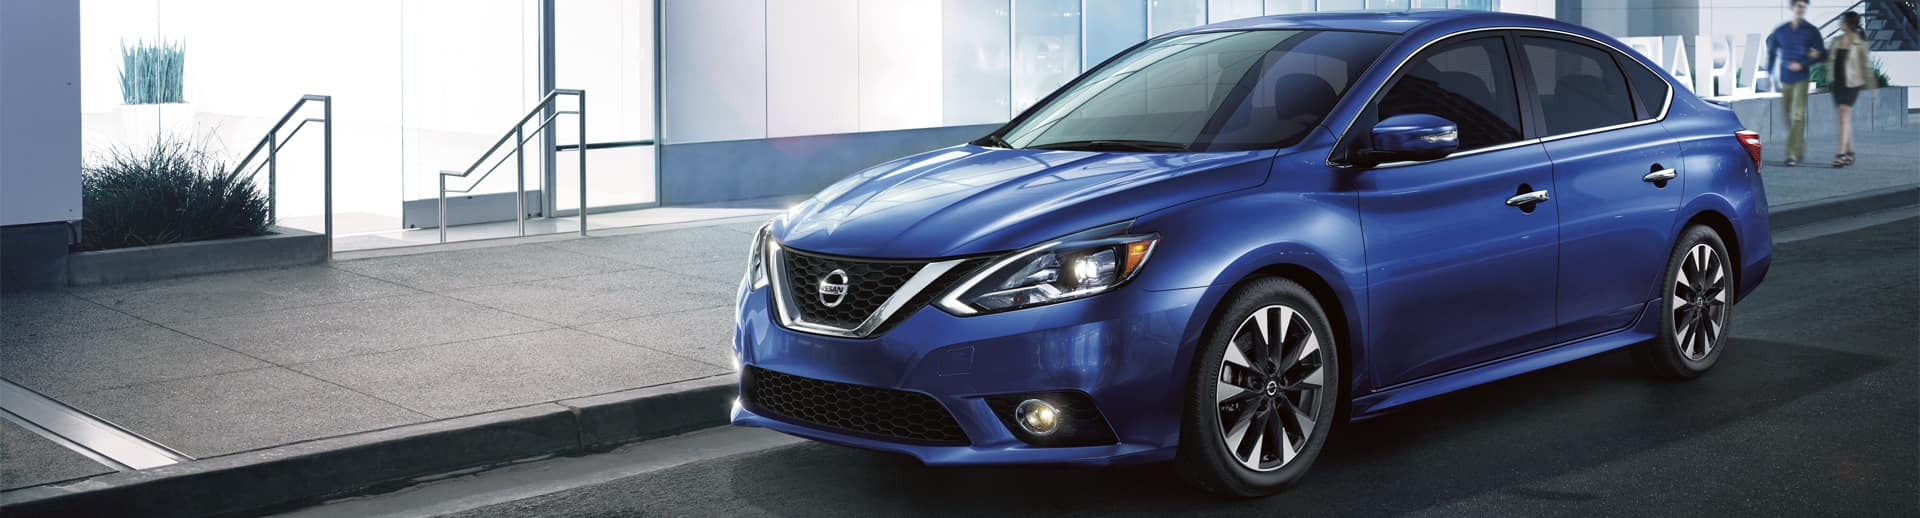 Nissan Sentra Service Manual: Without intelligent key system